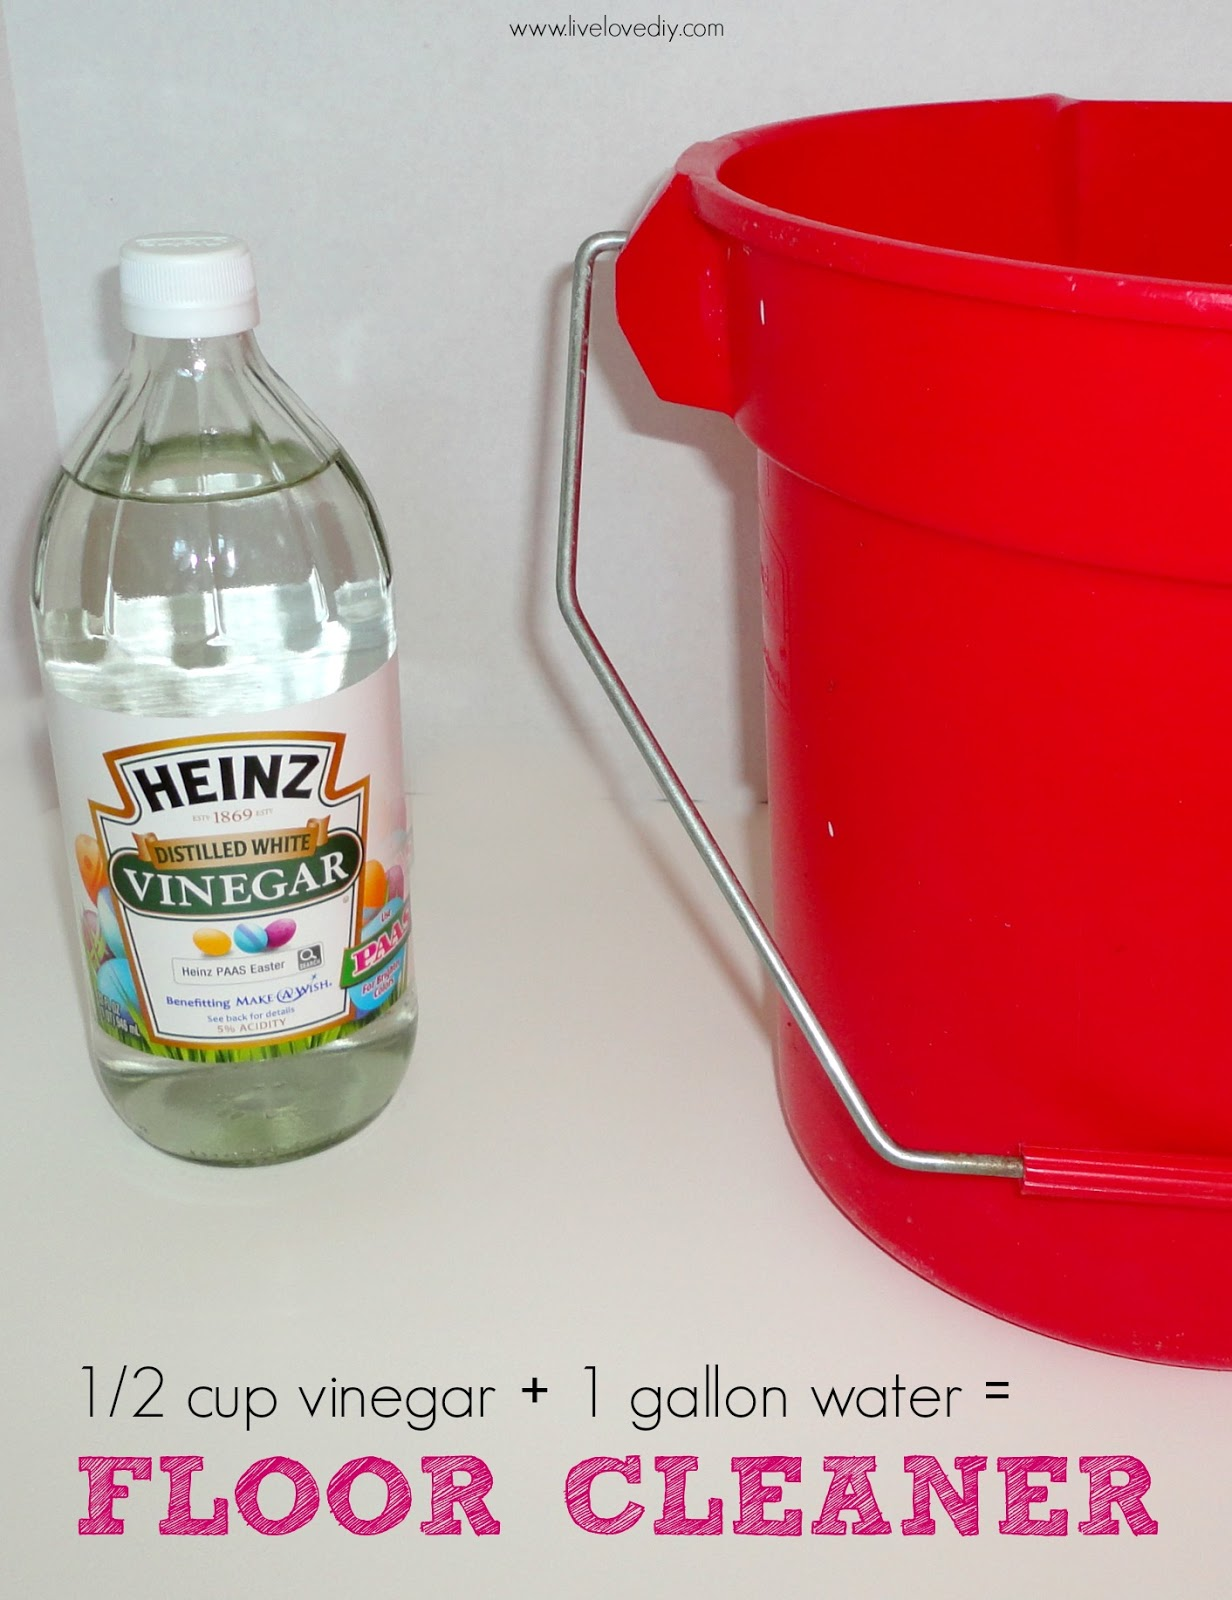 10 Vinegar Cleaning Secrets - LiveLoveDIY: 10 Vinegar Cleaning Secrets